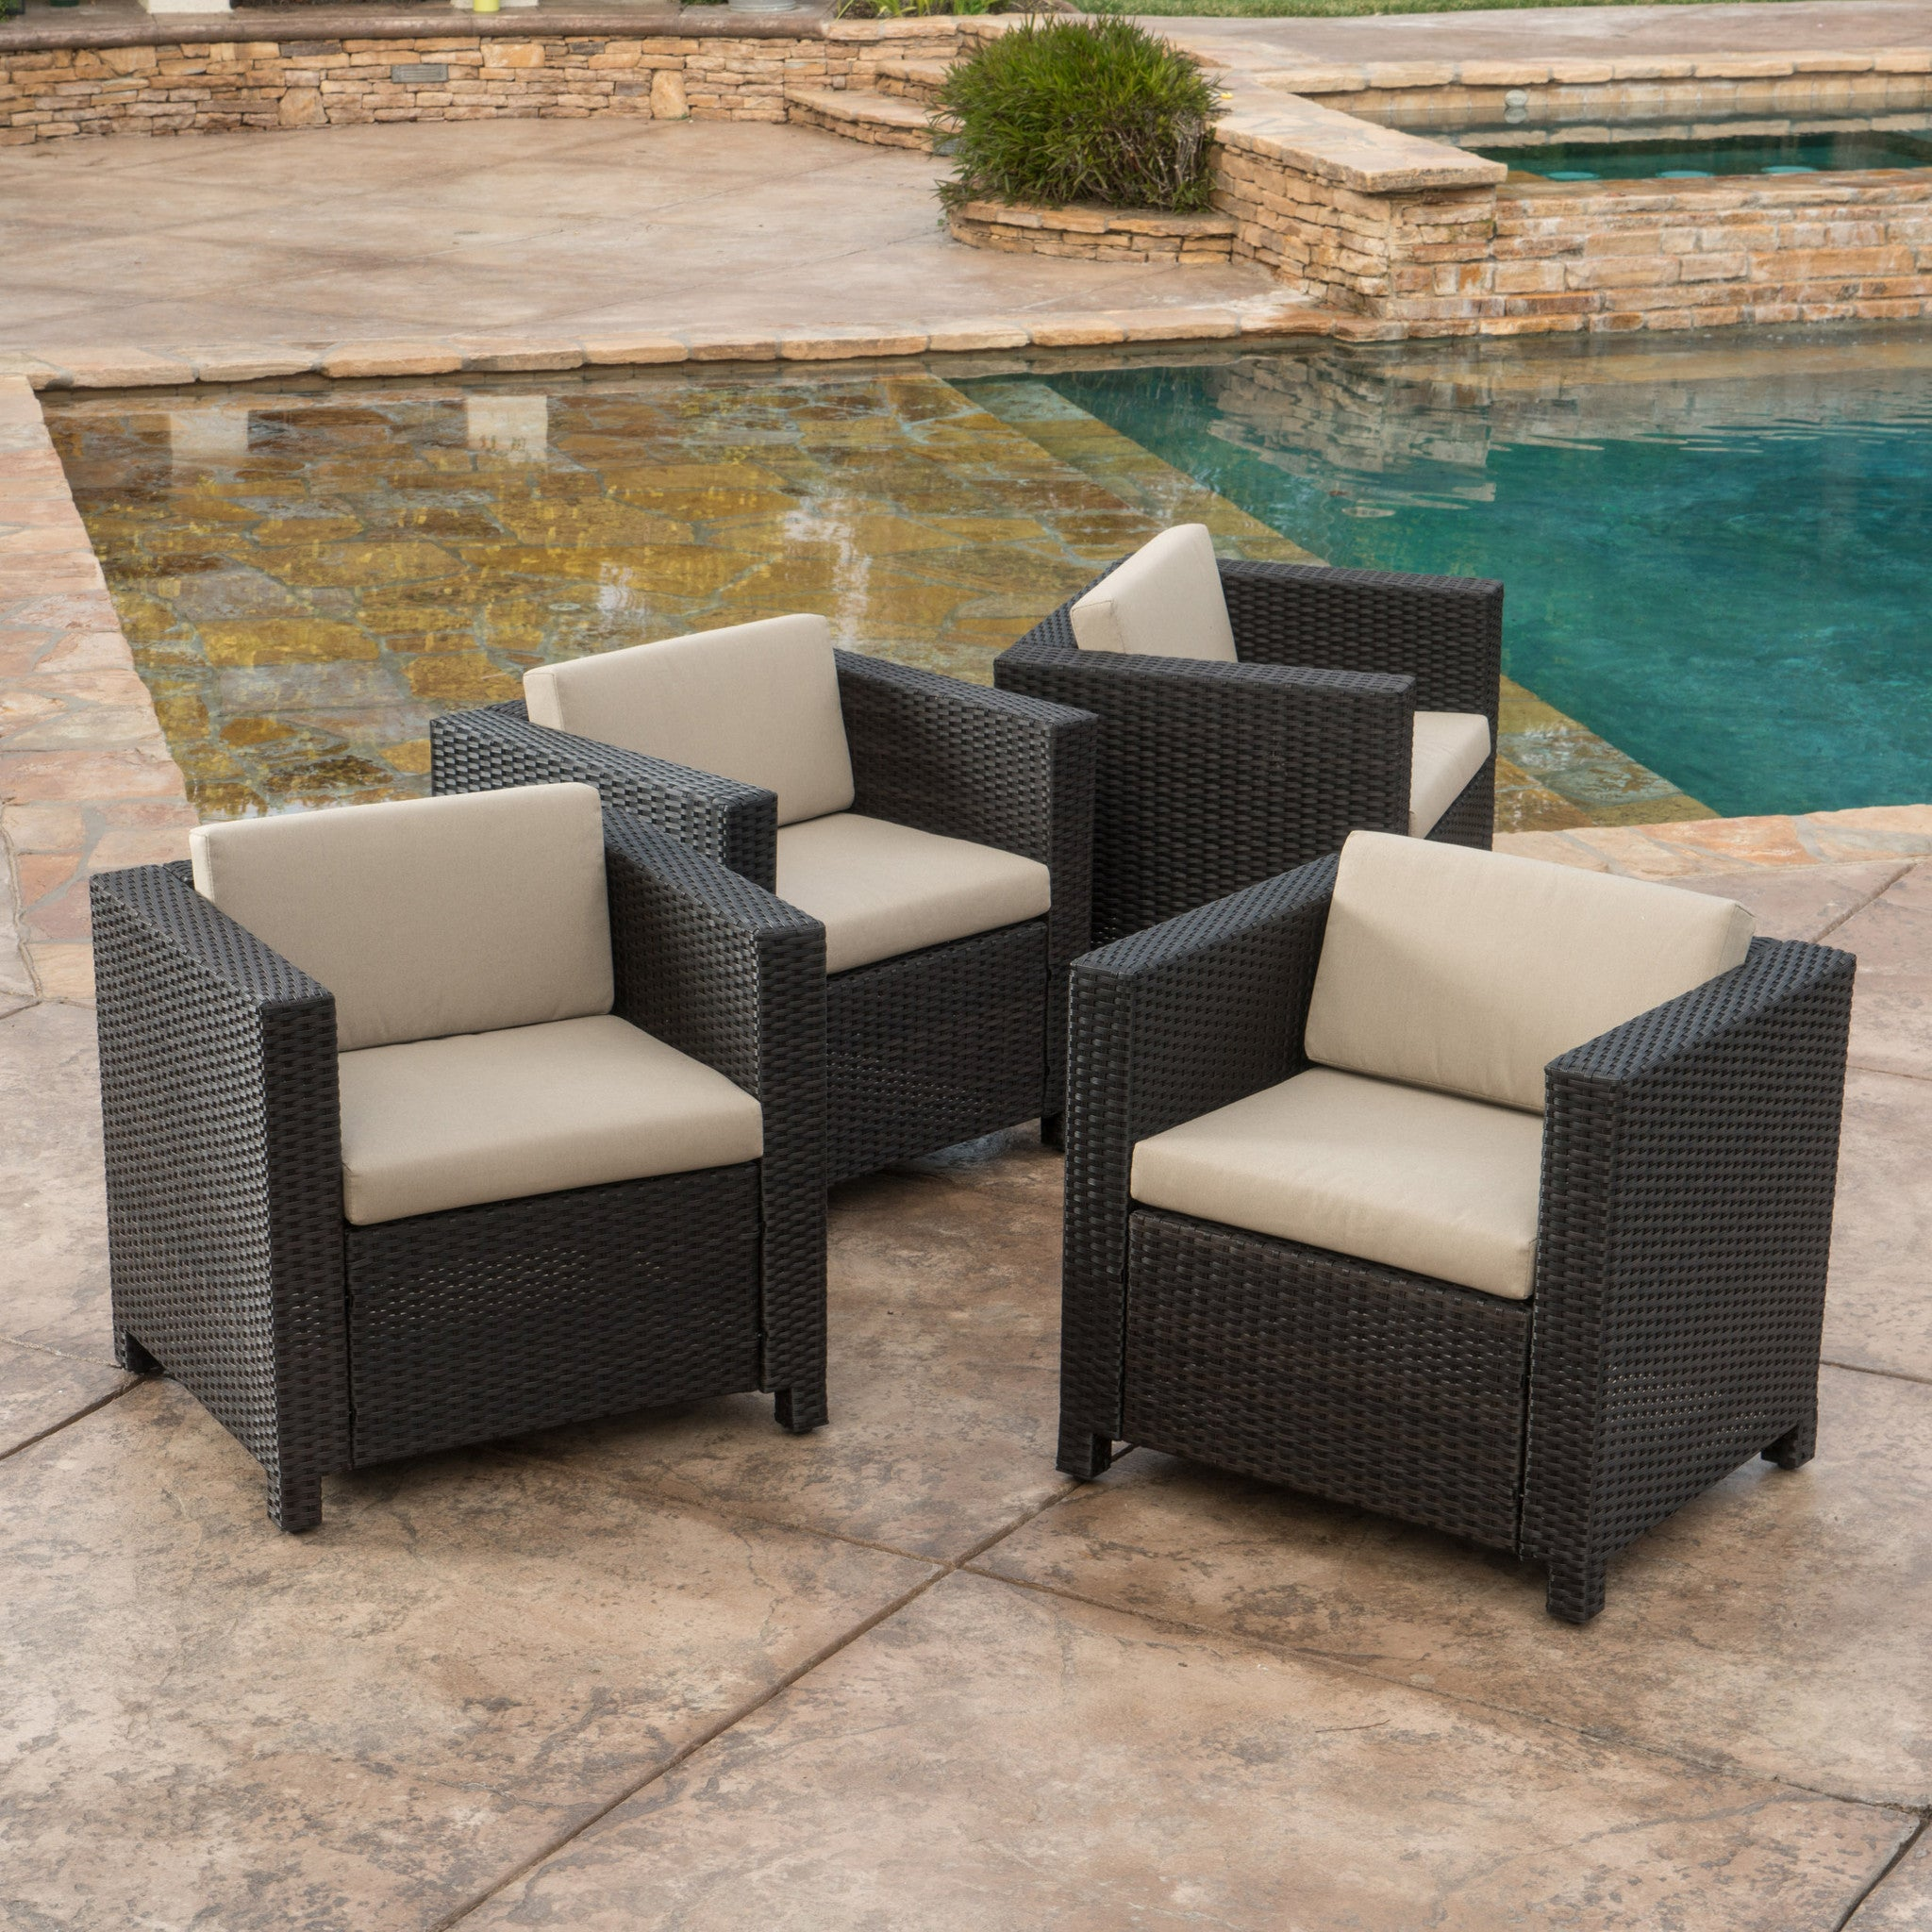 Outdoor Brown Wicker Club Chairs Cushions foto